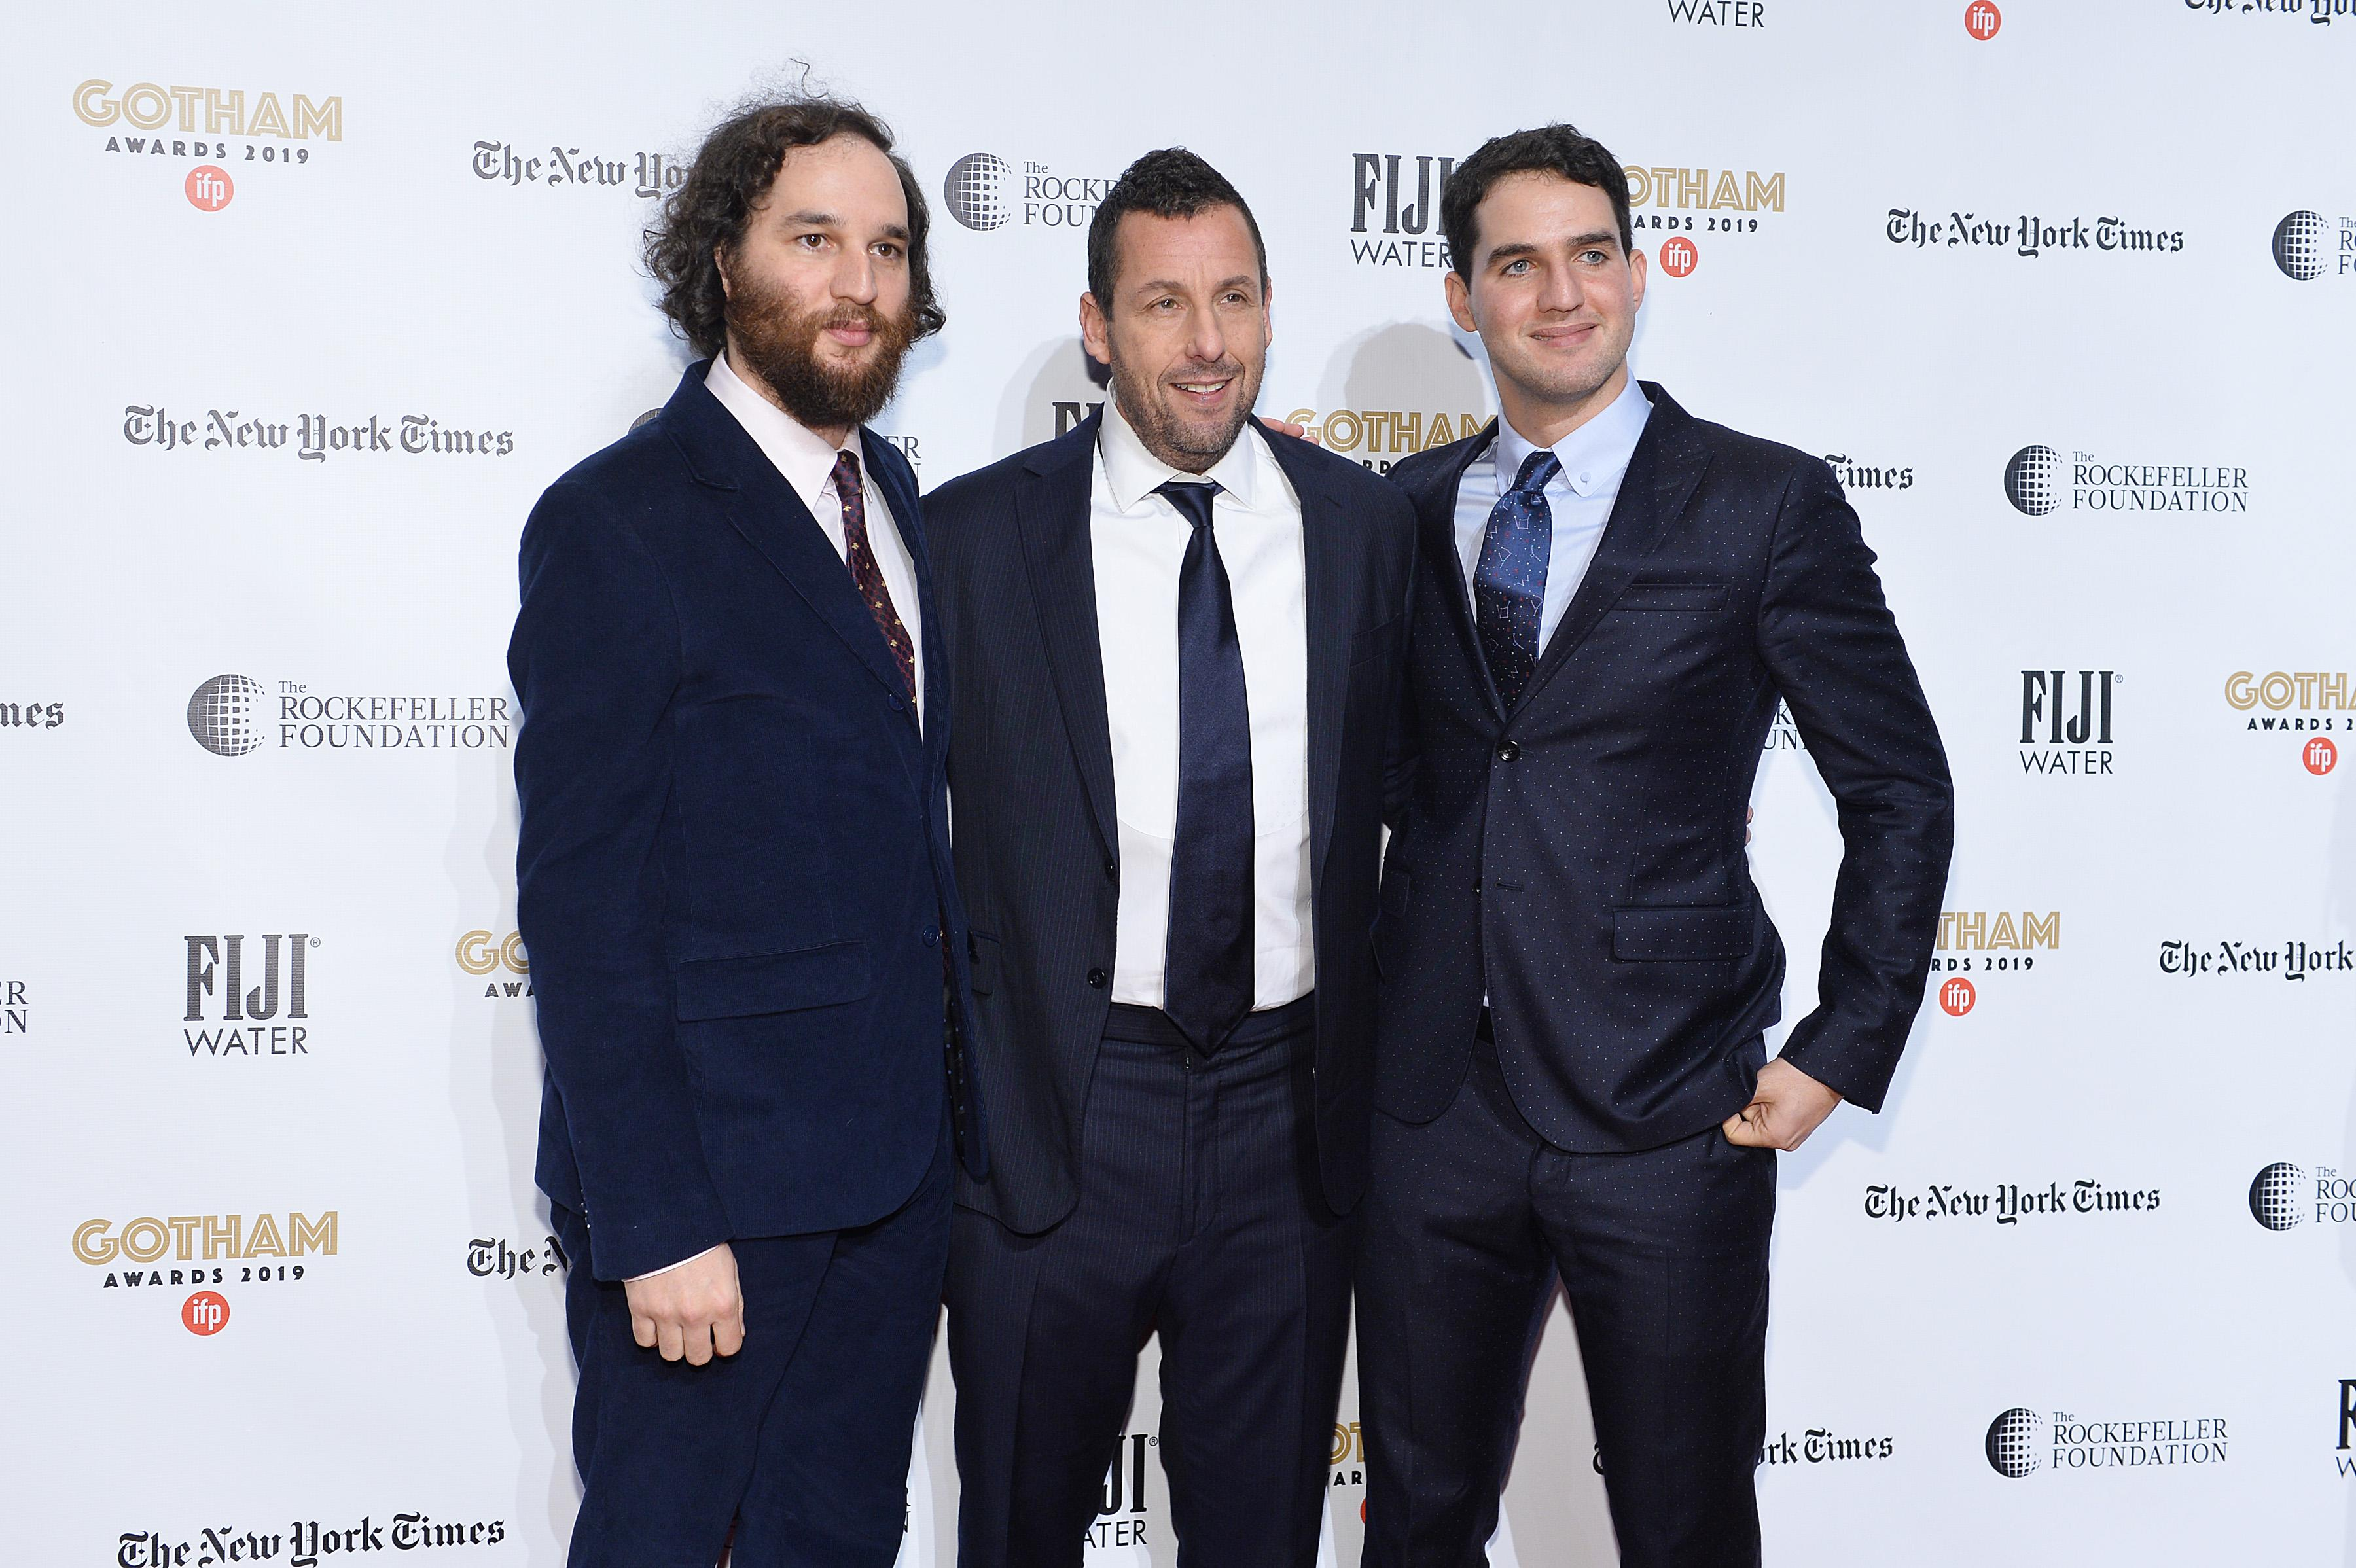 Josh Safdie, Adam Sandler and Benny Safdie attend the 2019 IFP Gotham Awards on December 02, 2019. (Photo by Noam Galai/Getty Images for FIJI Water)